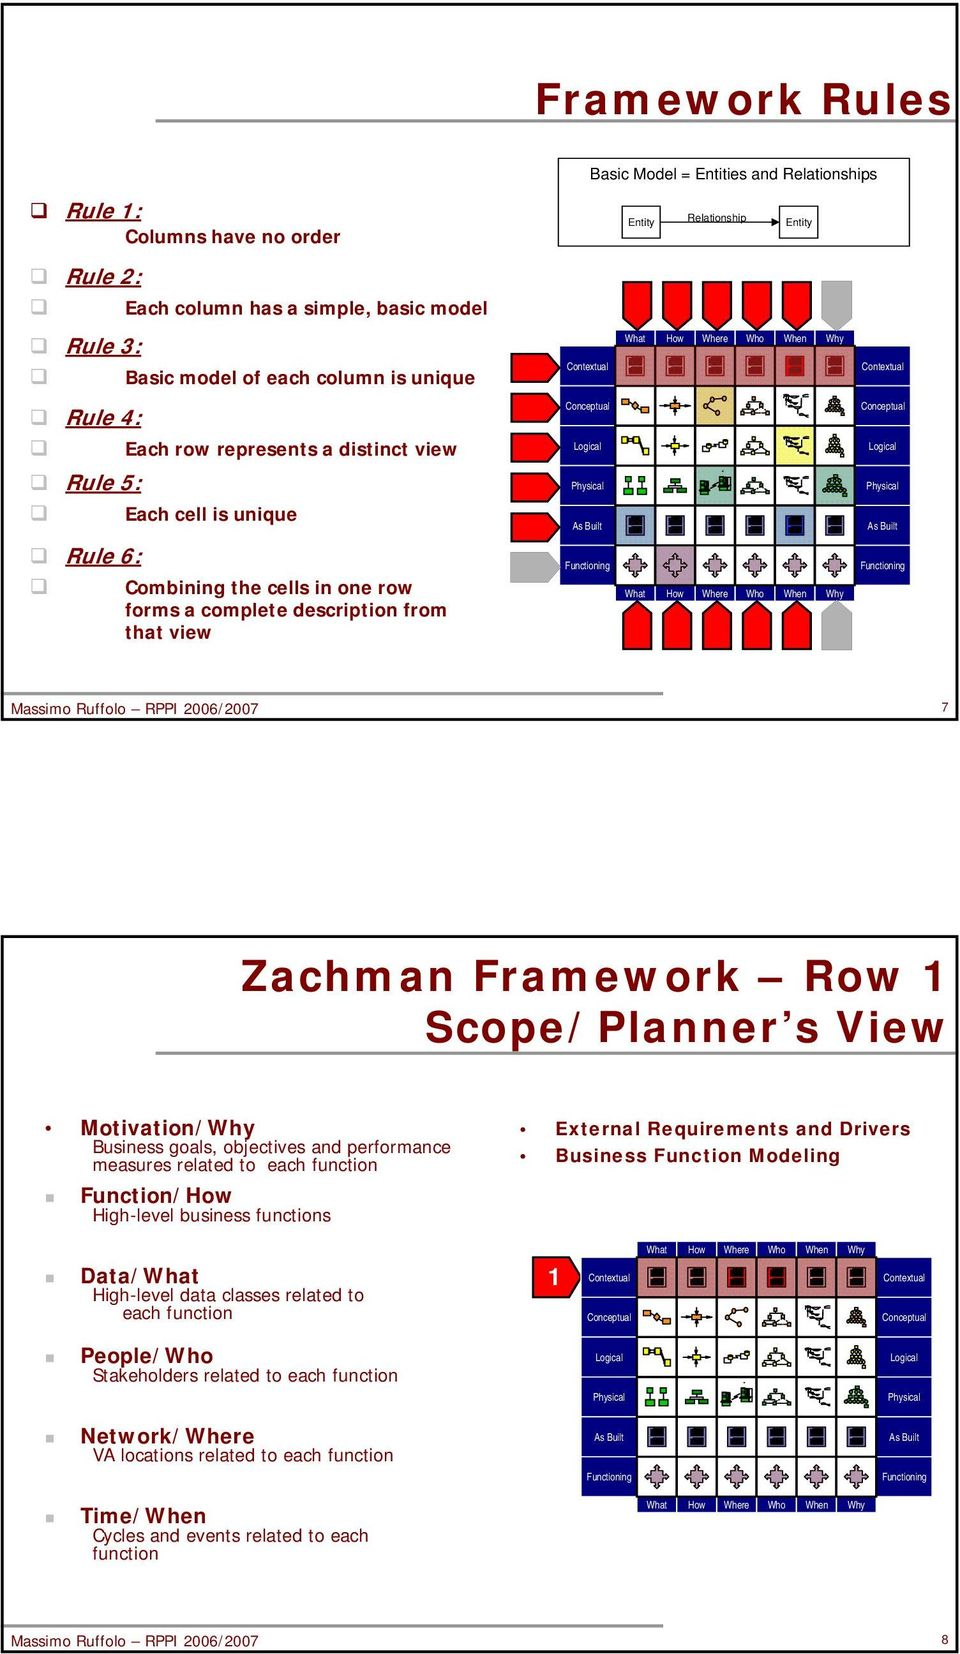 Zachman Framework Row 1 Scope/Planner s View Motivation/ Business goals, objectives and performance measures related to each function Function/ High-level business functions External Requirements and